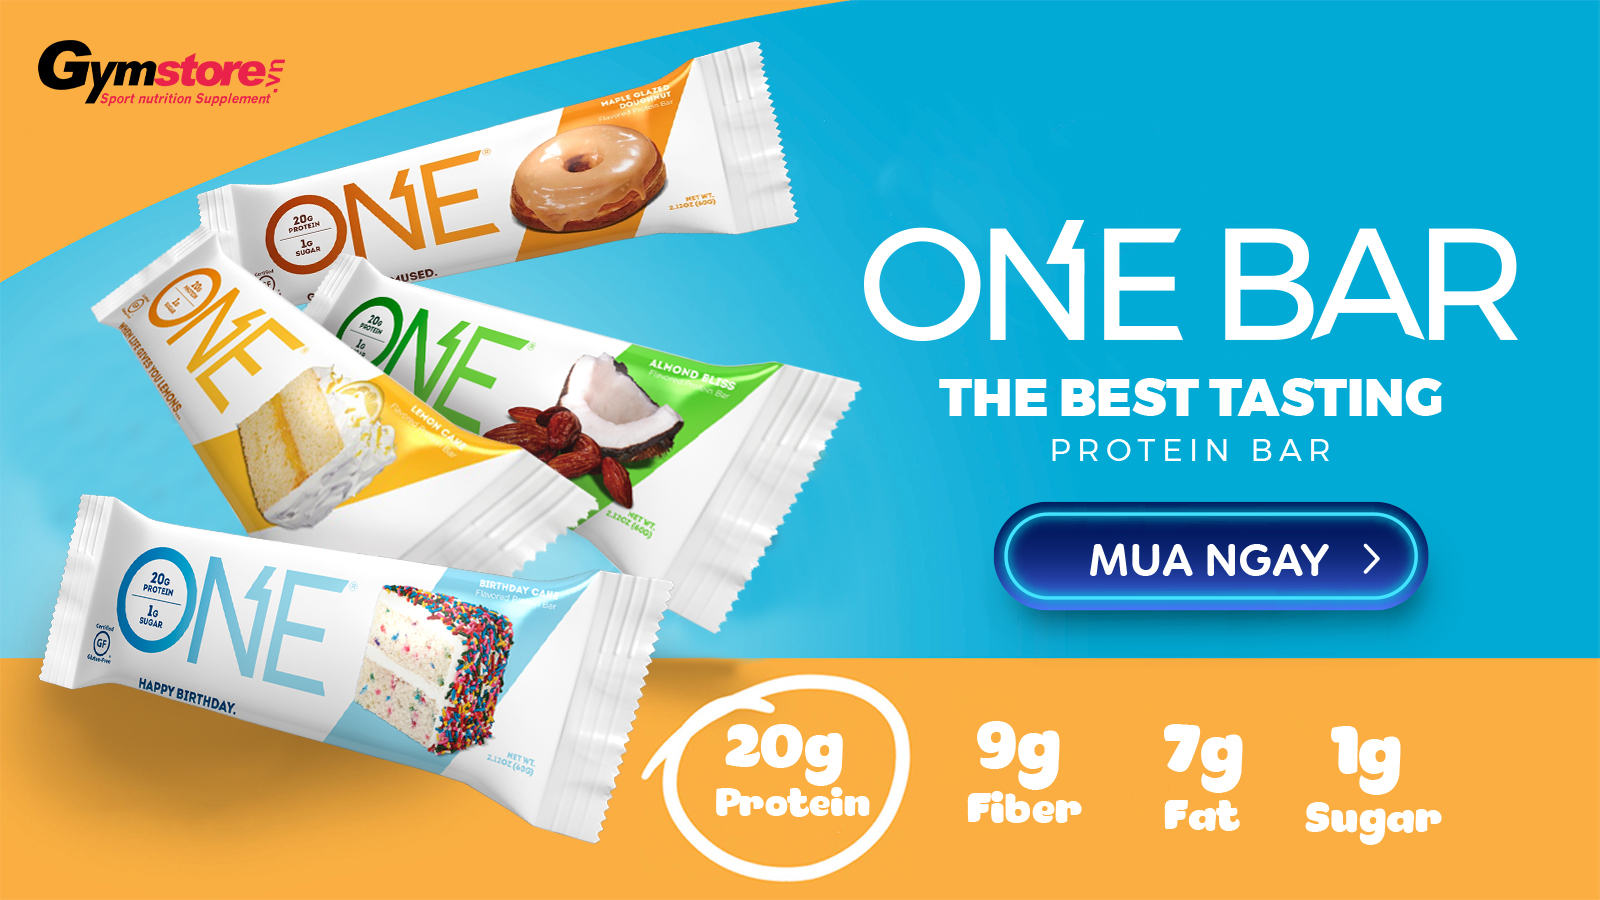 One-Bar-Protein-Bar-ngon-nhat-hien-nay-gymstore